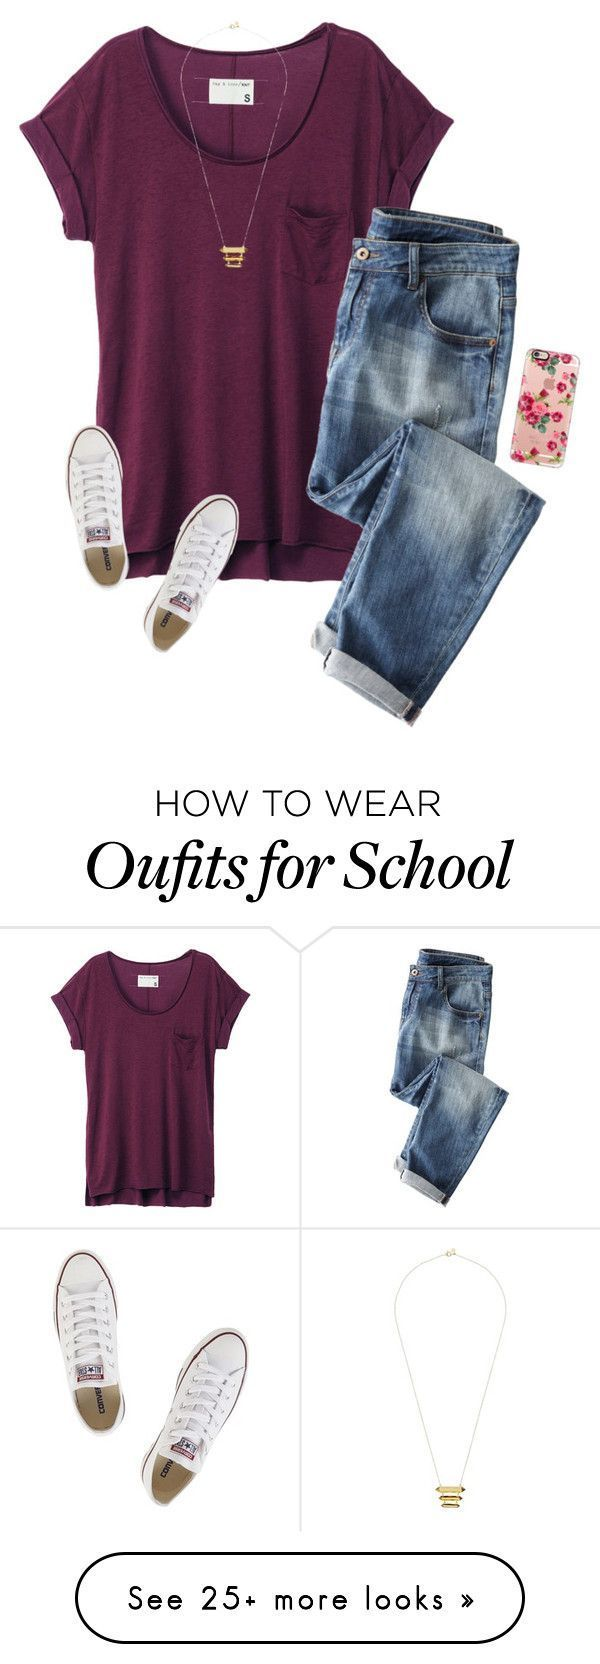 """""""We get to go to a play today at school!☺️"""" by savanahe on Polyvore featuring rag & bone, Wrap, Casetify, Converse and Gorjana"""